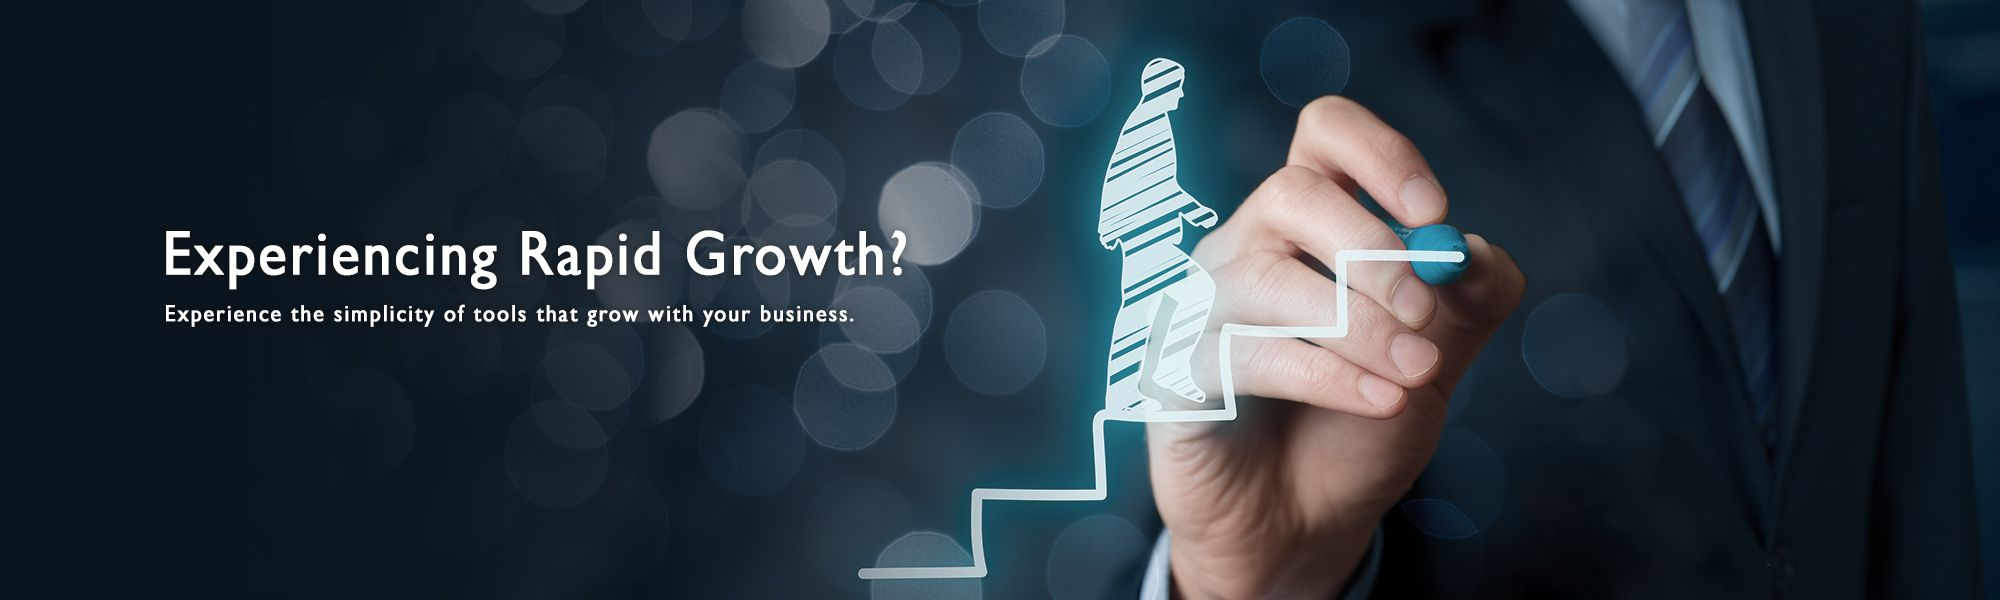 Experiencing Rapid Growth?